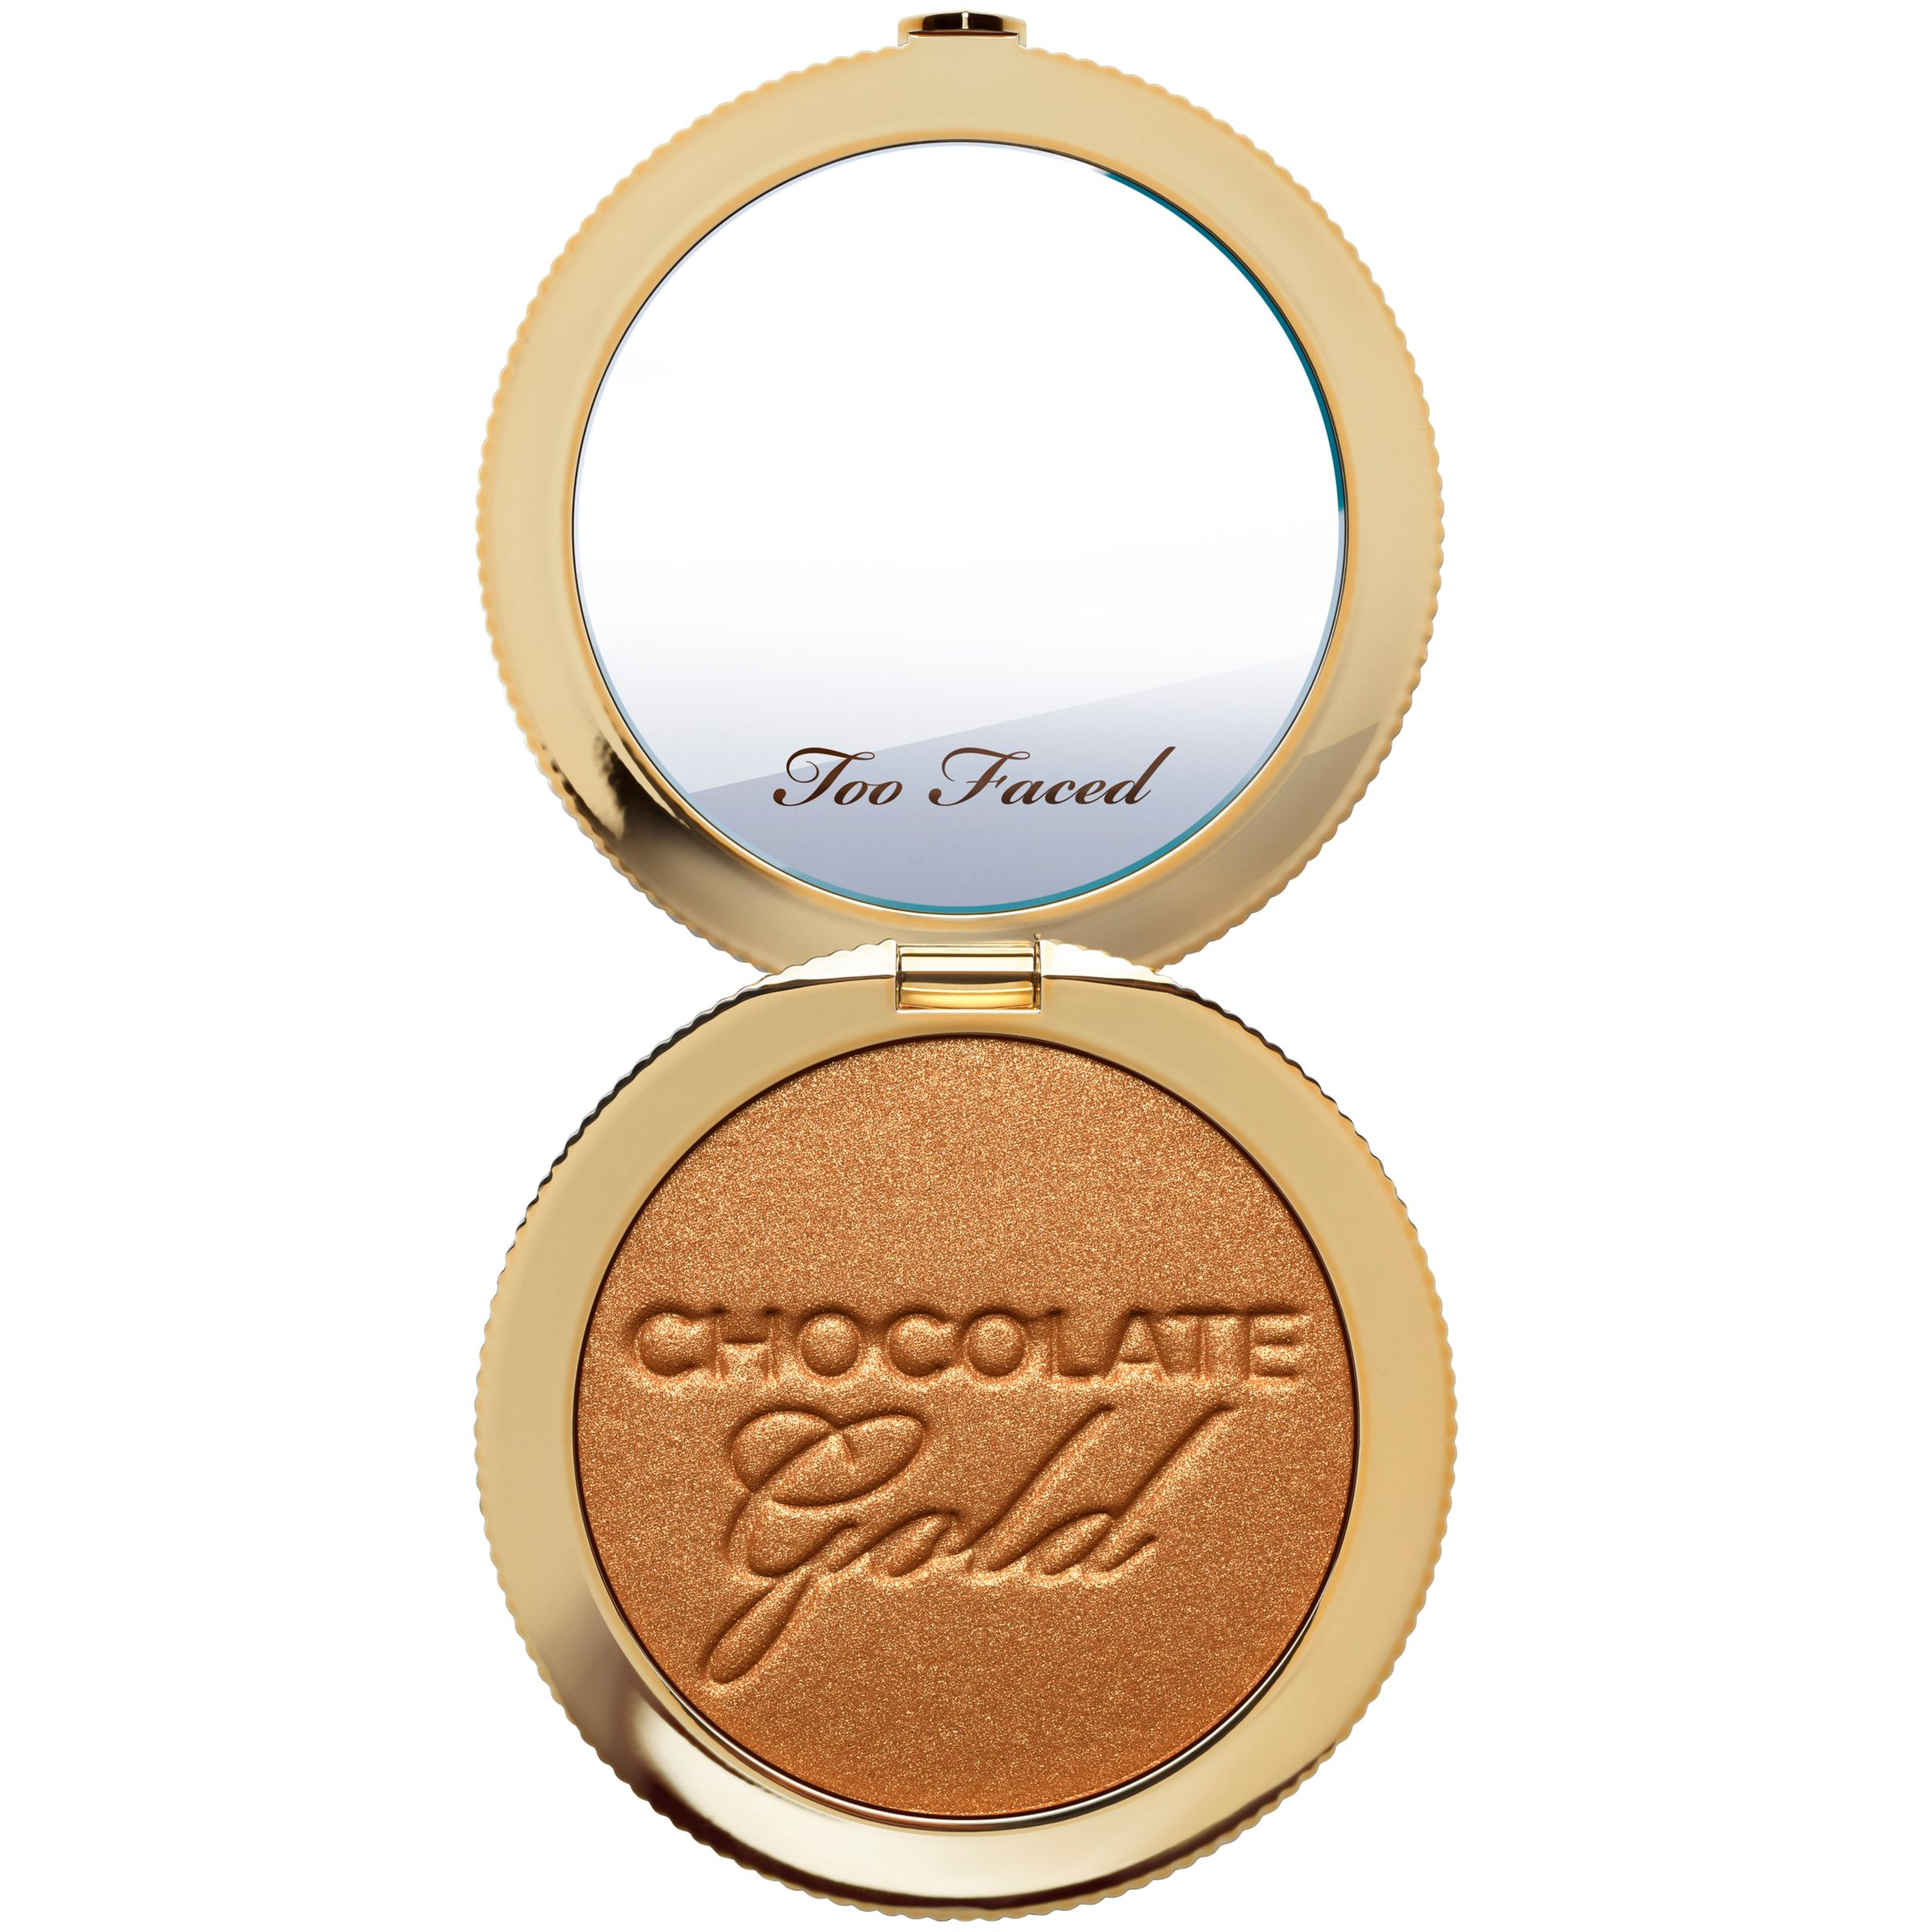 Too Faced Too Faced Chocolate Gold Soleil Bronzer